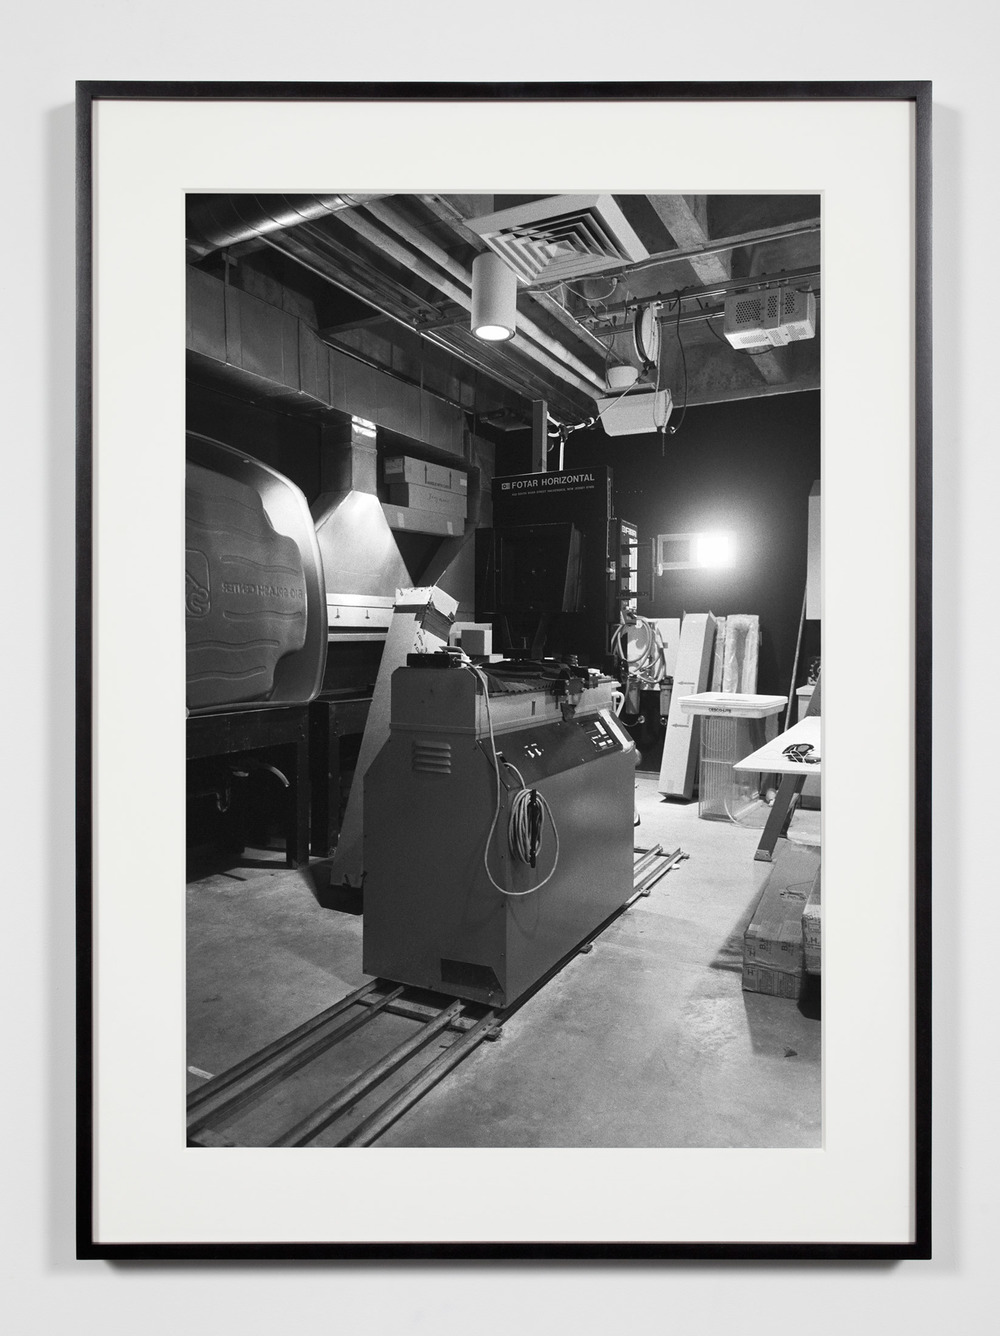 Horitonzal Enlarger (Fotar), Irvine, California, July 18, 2008    2009   Epson Ultrachrome K3 archival ink jet print on Hahnemühle Photo Rag paper  36 3/8 x 26 3/8 inches   Industrial Portraits, 2008–